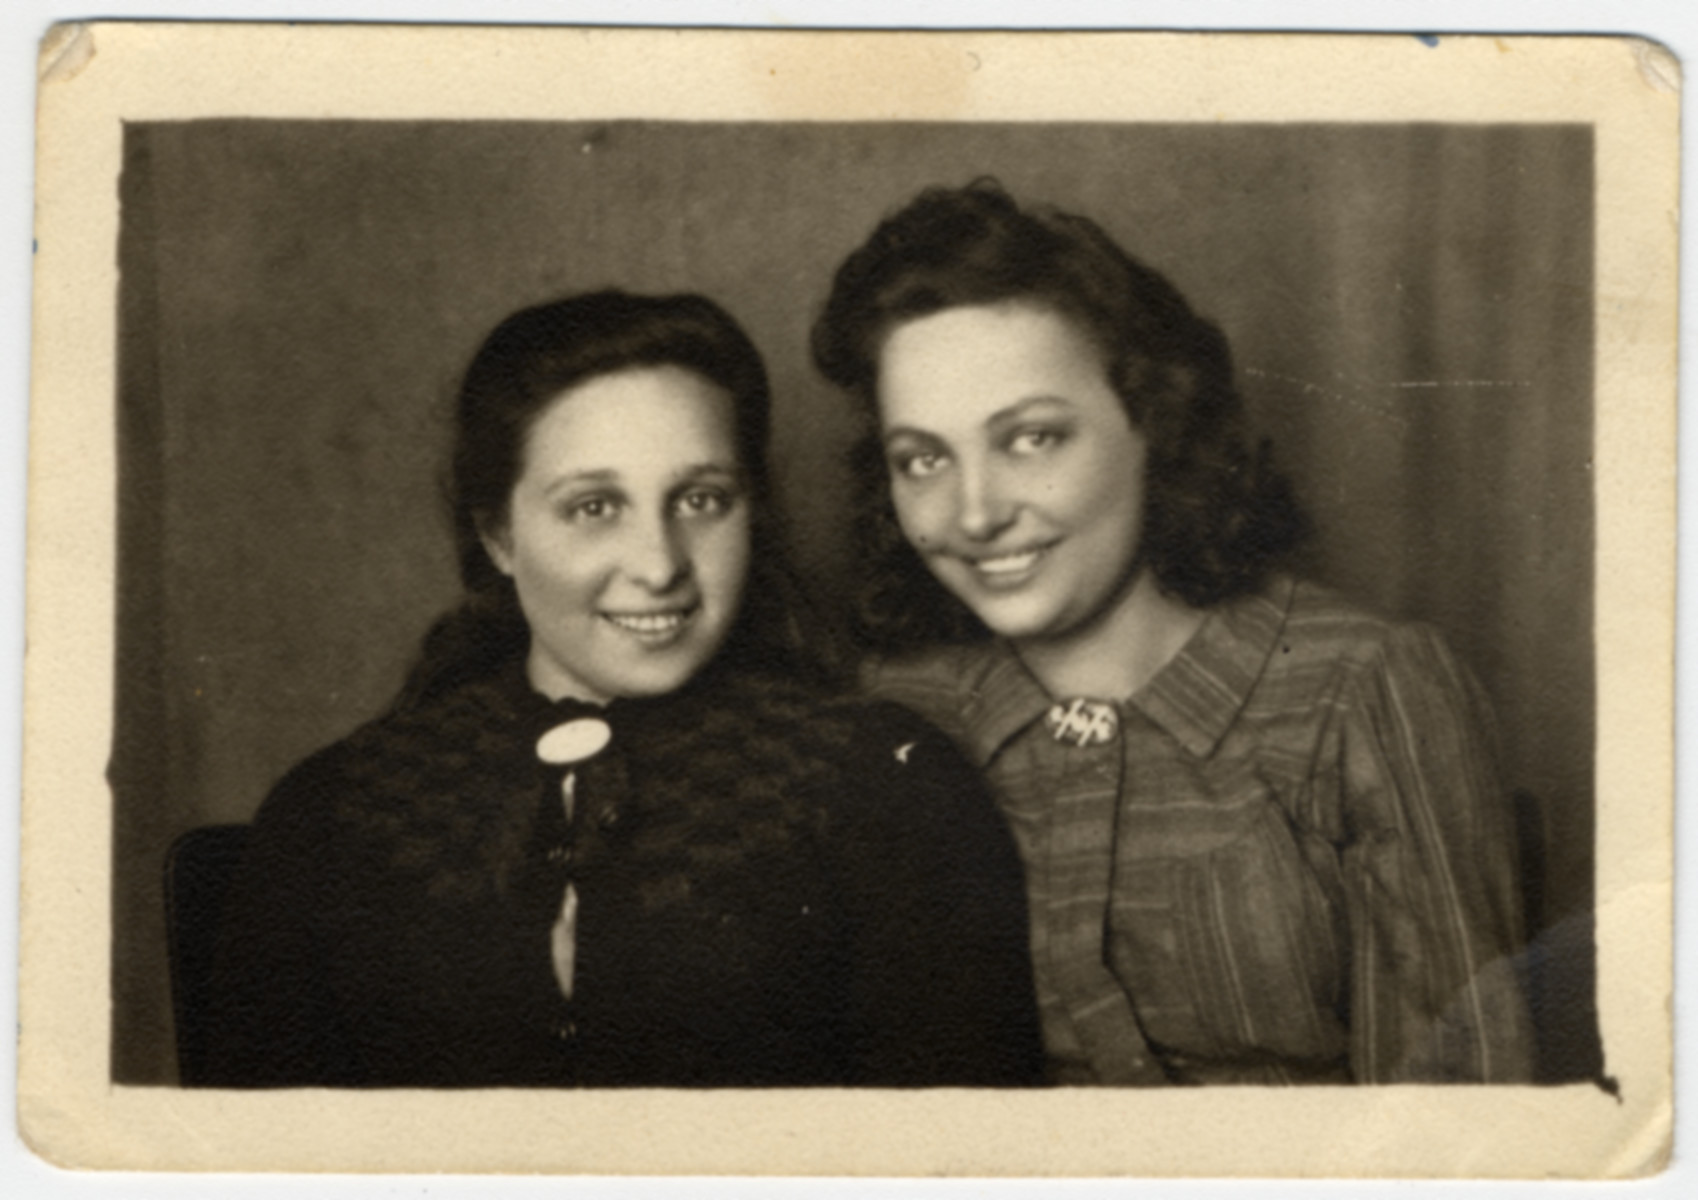 Postwar portrait of two of the few female Bielski partisans who carried weapons.   Pictured are Esther (Essie) Shor (a cousin of the Bielski brothers) and Itka Ass.